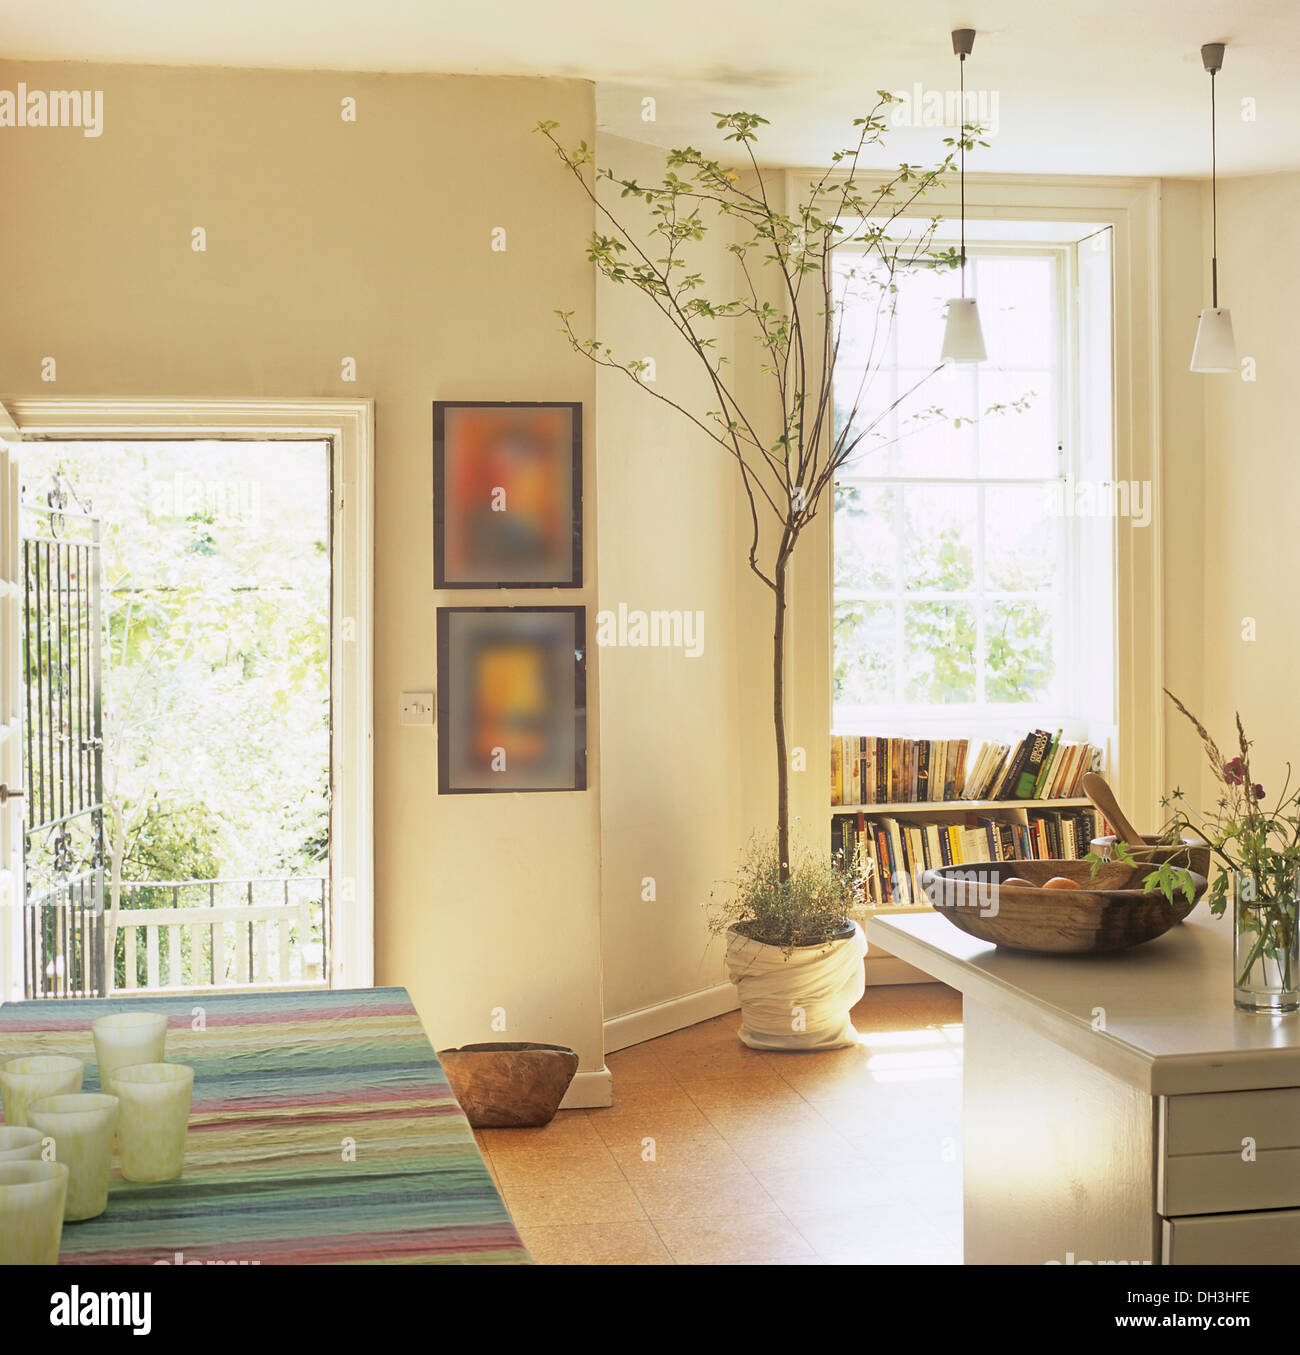 Indoor Tree In Pot Beside Tall Window Kitchen Dining Room With Striped Cloth On Table And Door Open To Garden